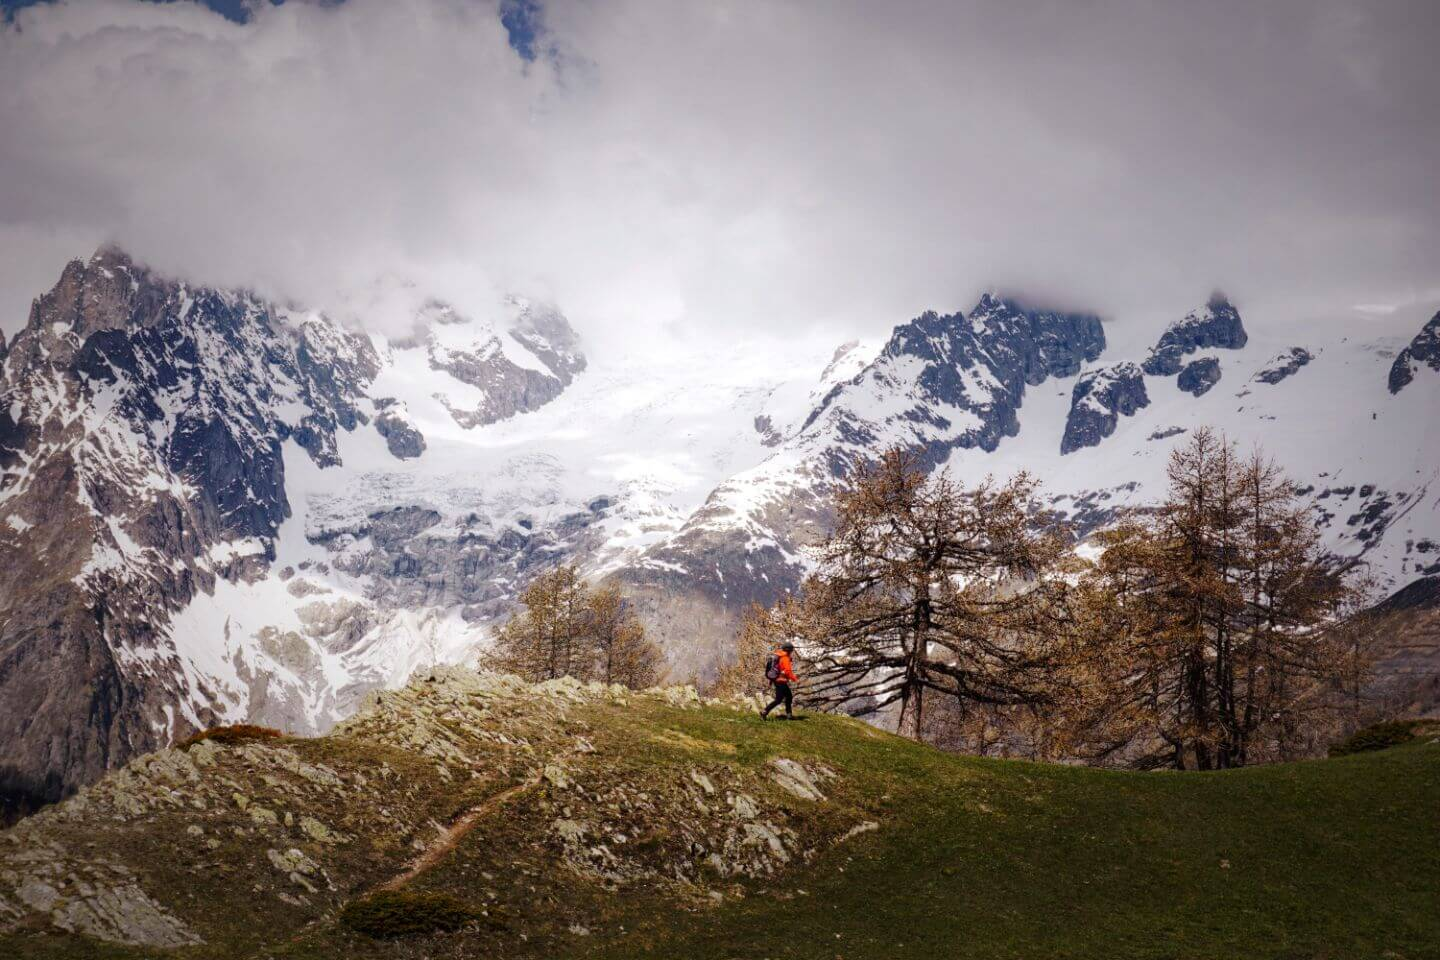 Rifugio Bertone View, Courmayeur, Aosta Valley, Italy - Best Things to Do in Courmayeur, Italy